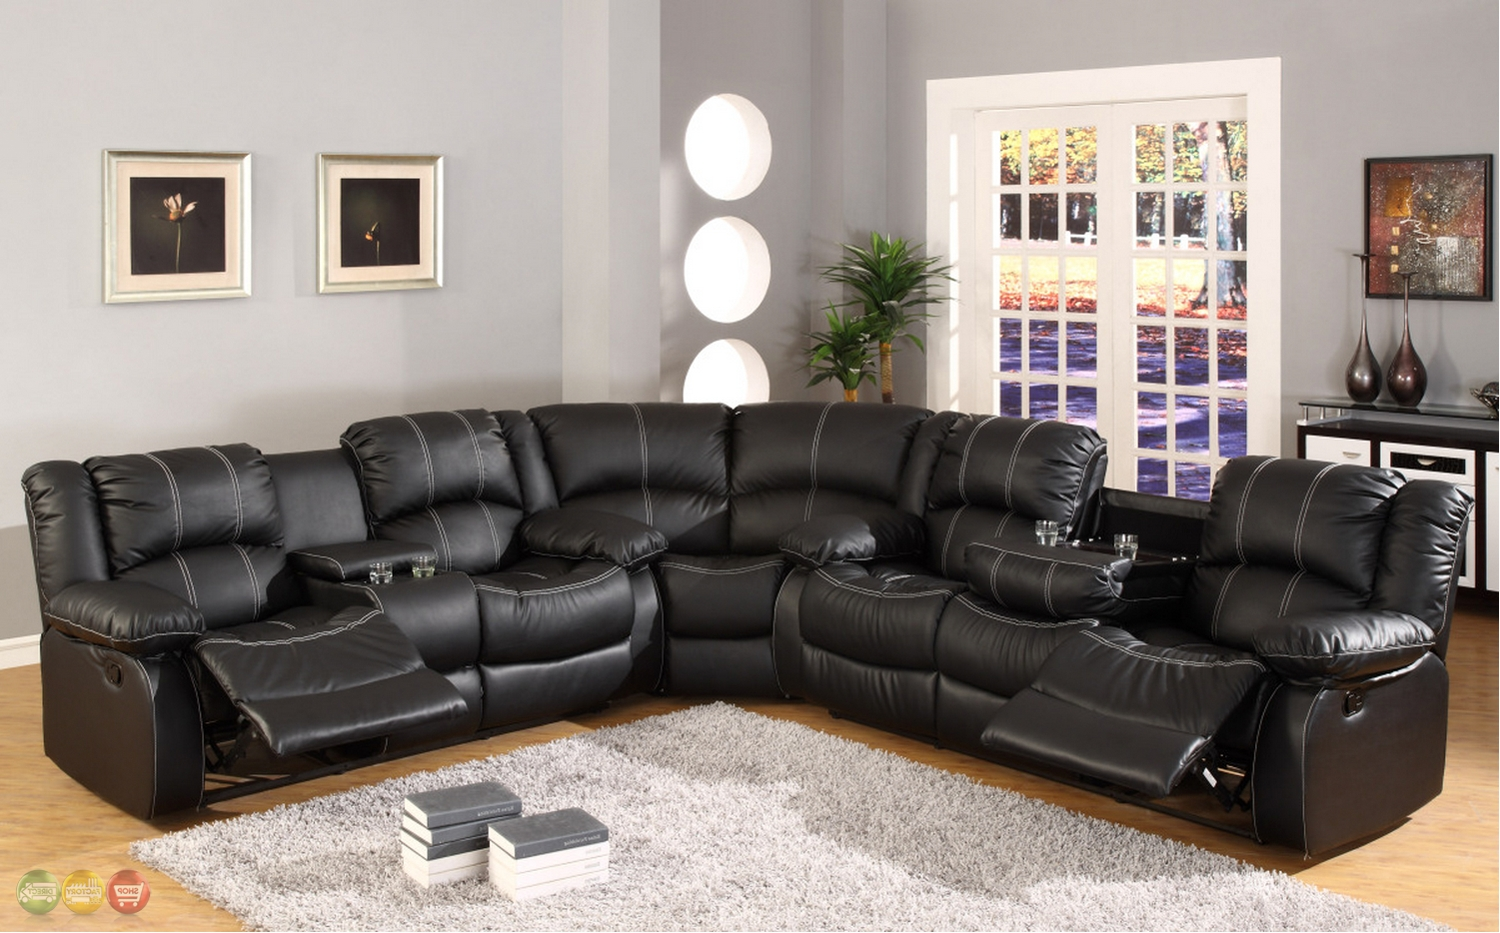 Faux Leather Sectional Sofas Inside Most Popular Black Faux Leather Reclining Motion Sectional Sofa W/ Storage (View 6 of 15)